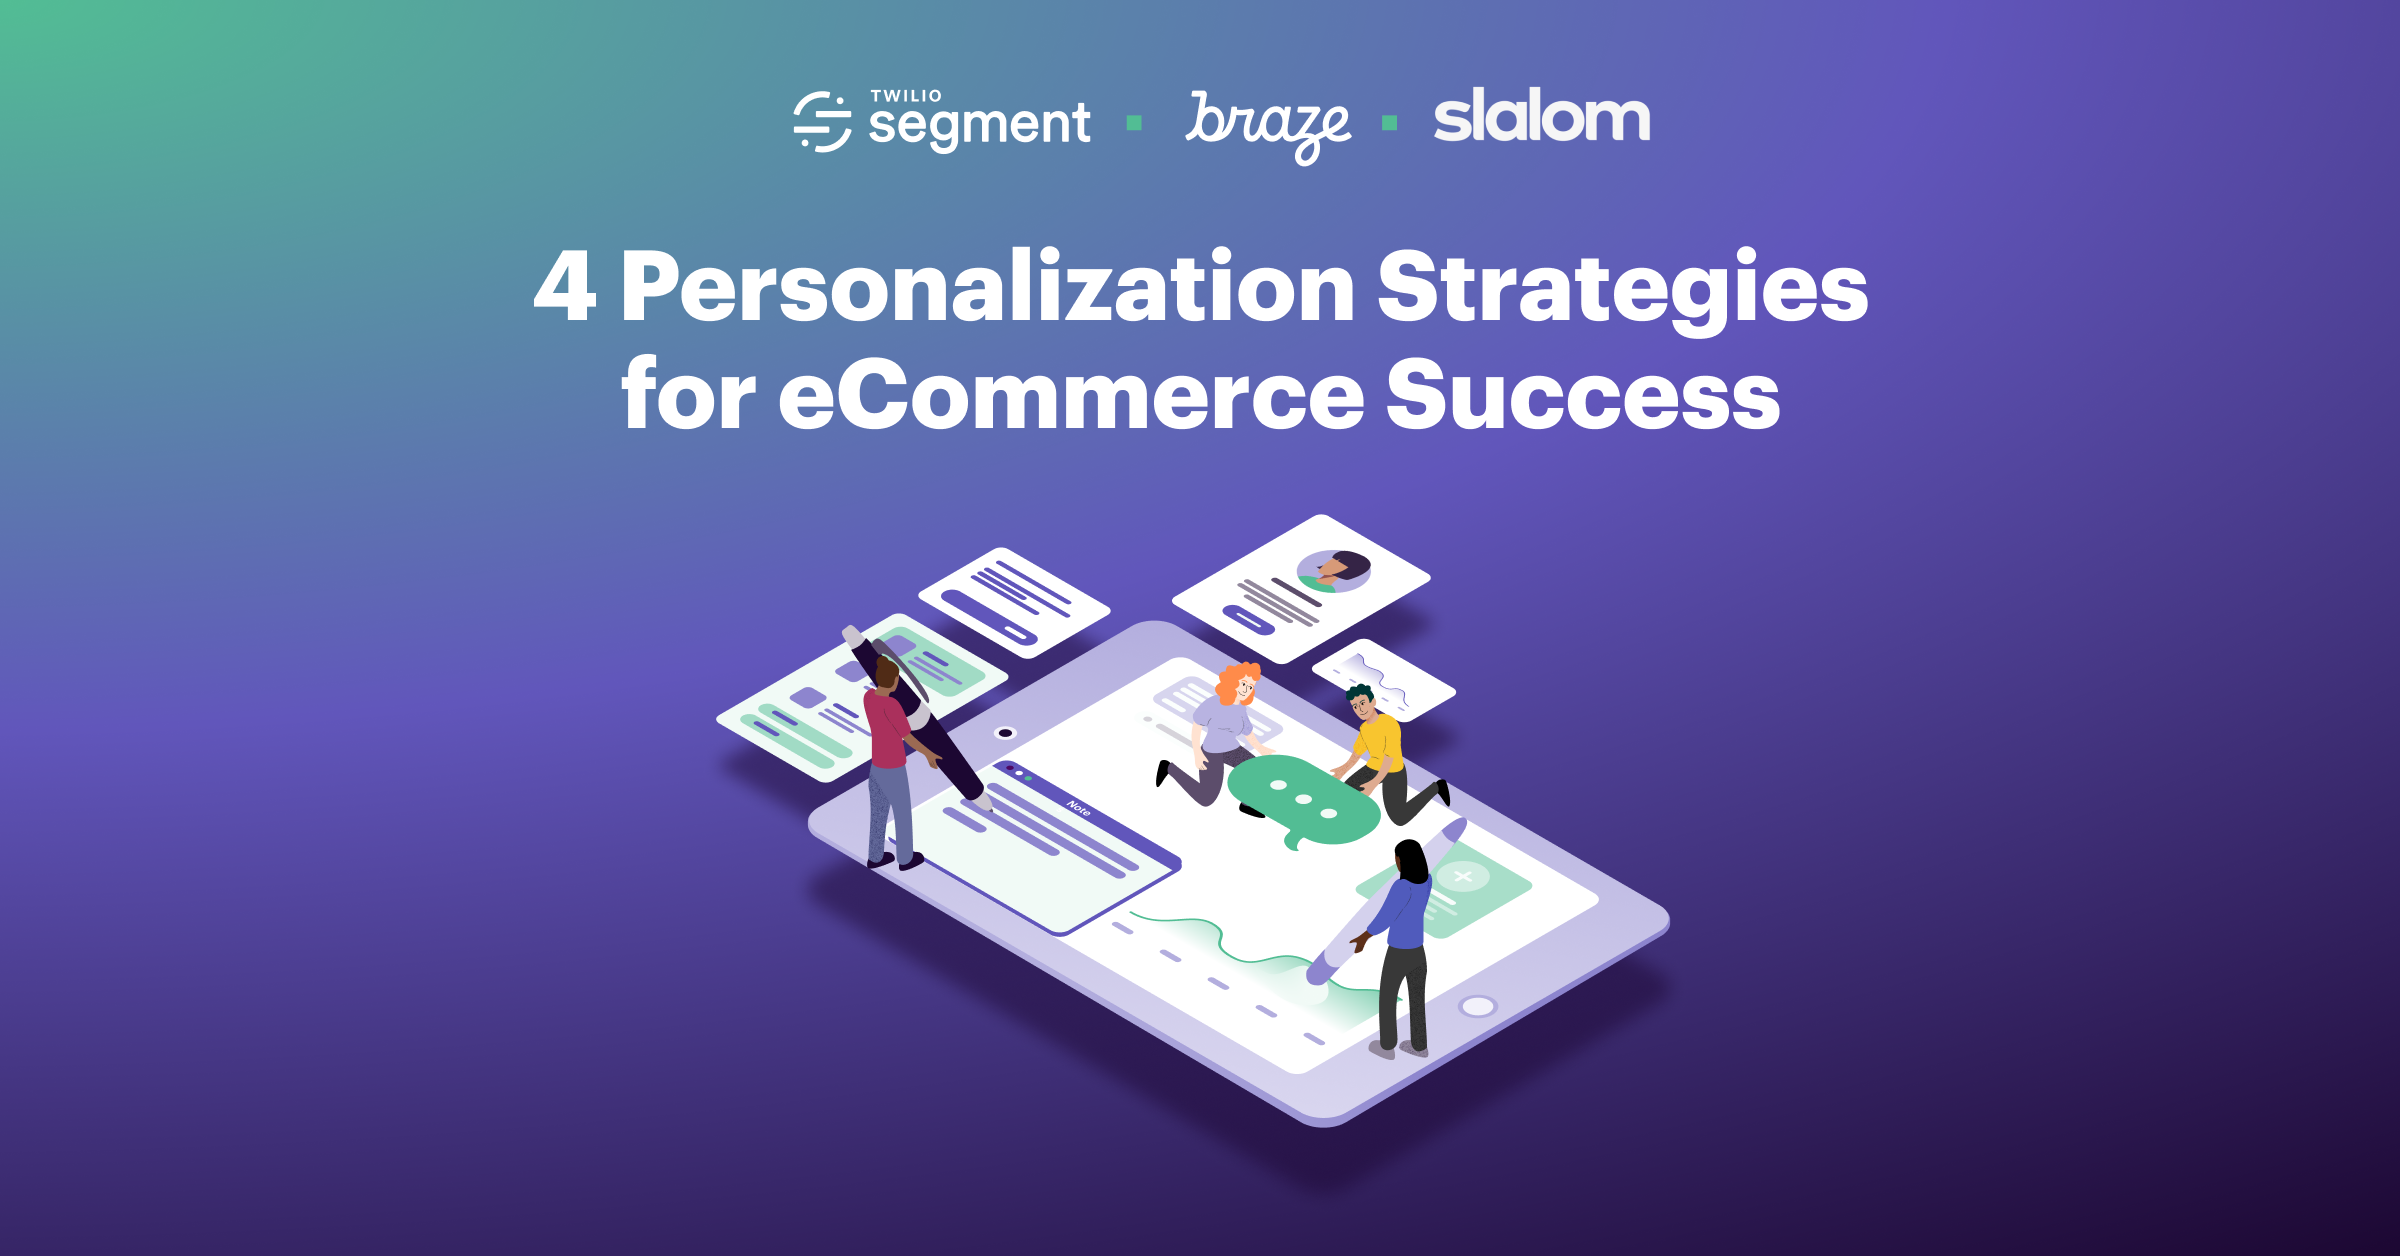 4 Personalization Strategies for eCommerce Success